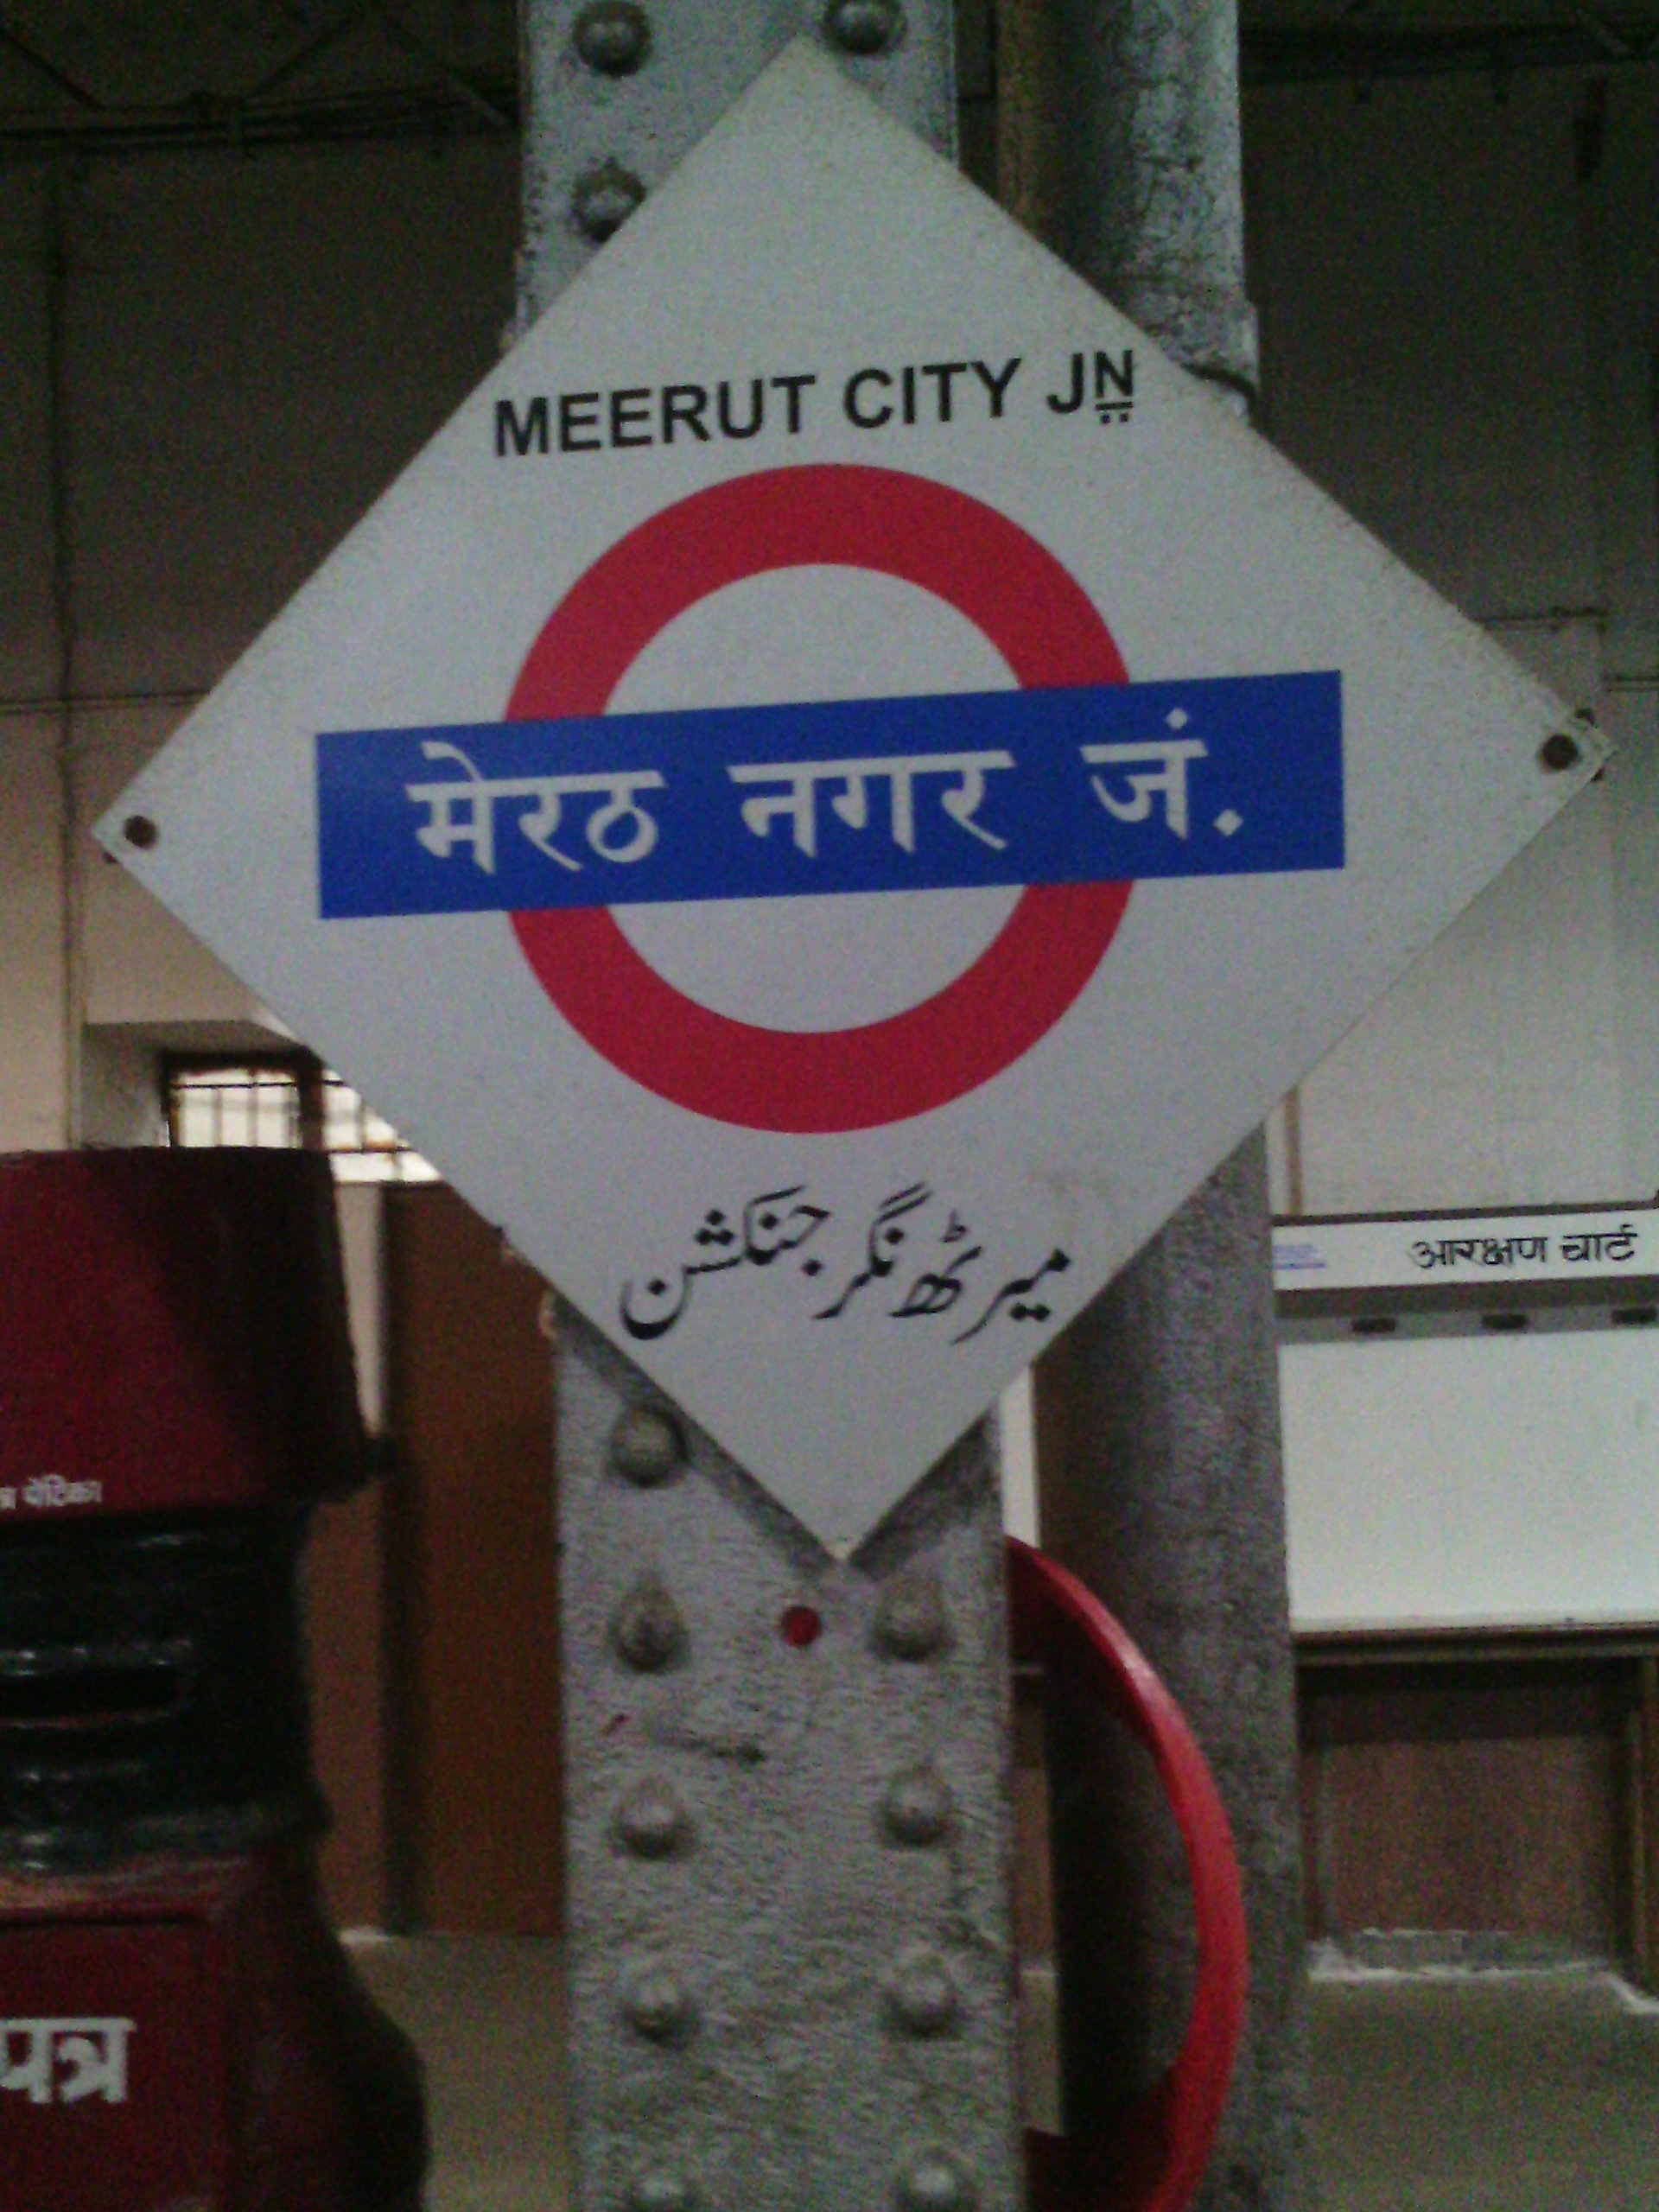 A new Industrial Zone will be developed in Meerut